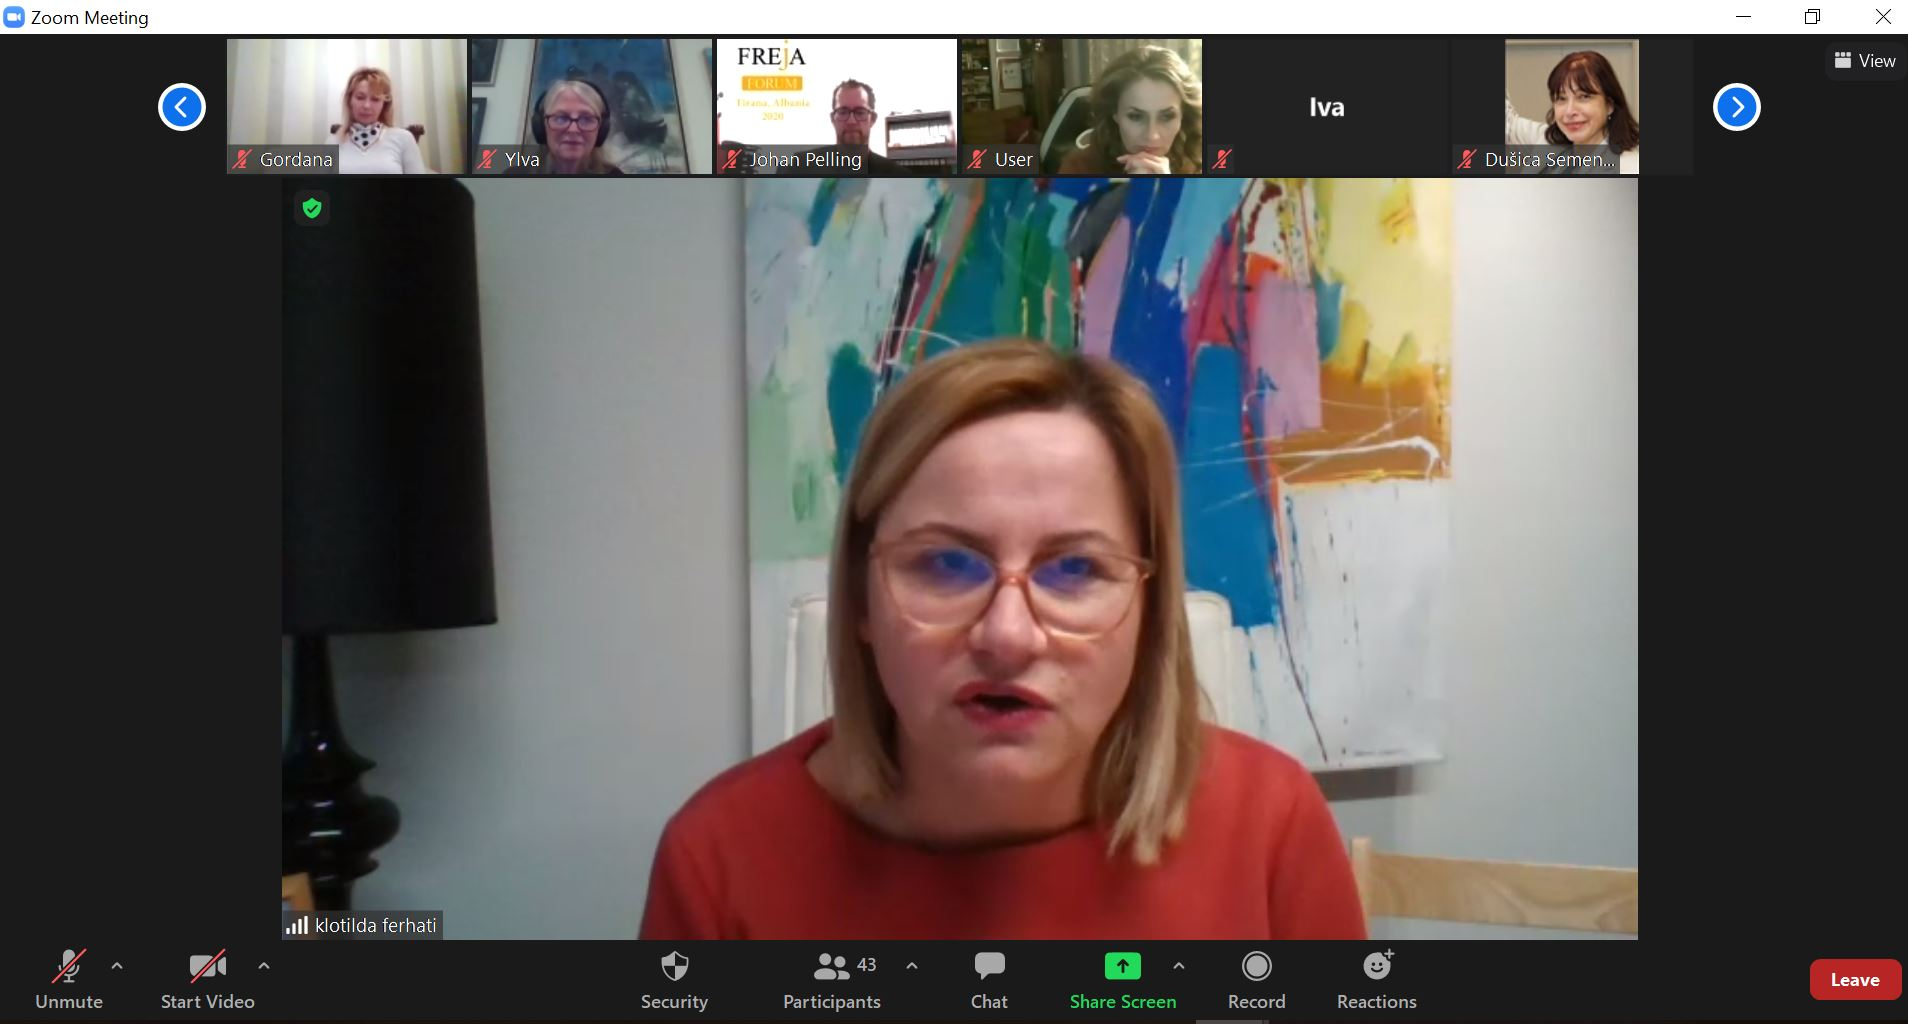 Woman in glasses and red blouse in front of colourful painting, at digital meeting.